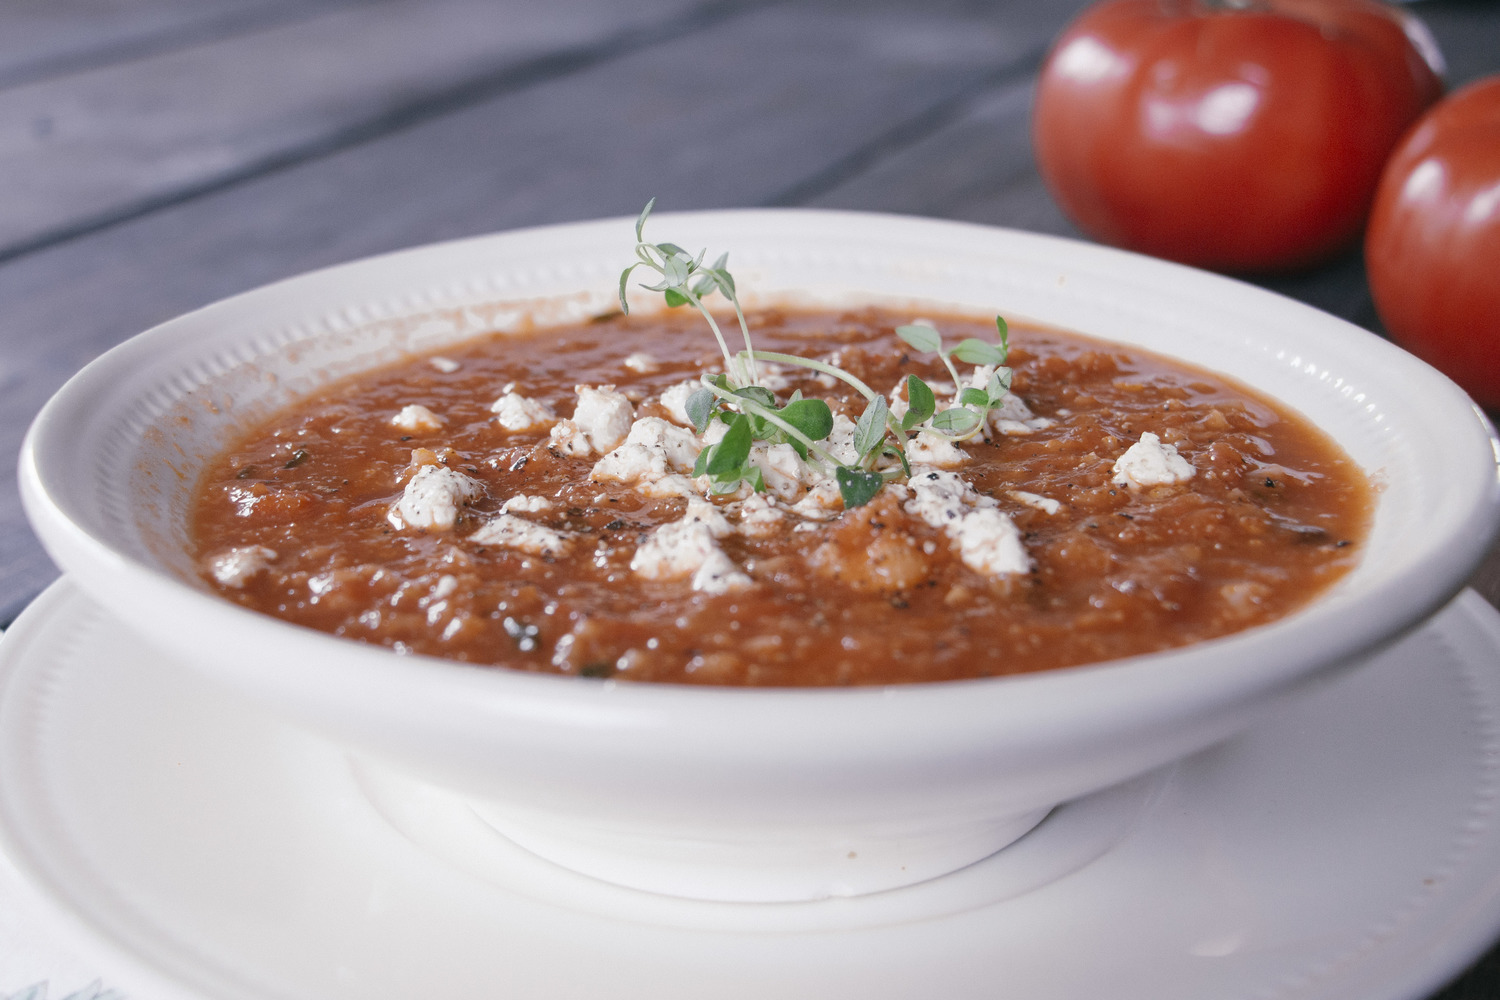 Spicy Roasted Red Pepper, Cauliflower and Tomato Soup